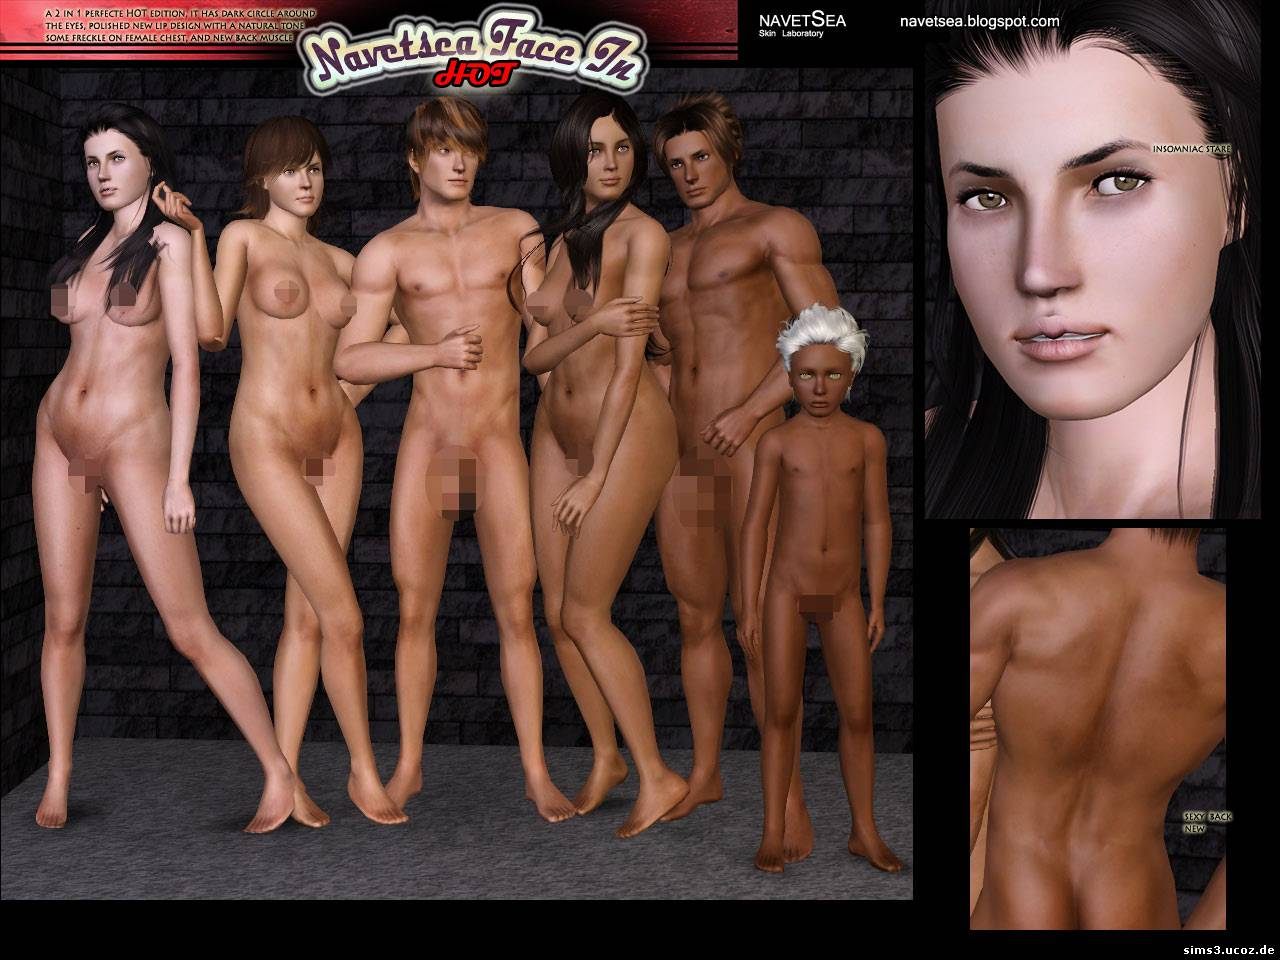 Sims3 nude legal patch hentai picture